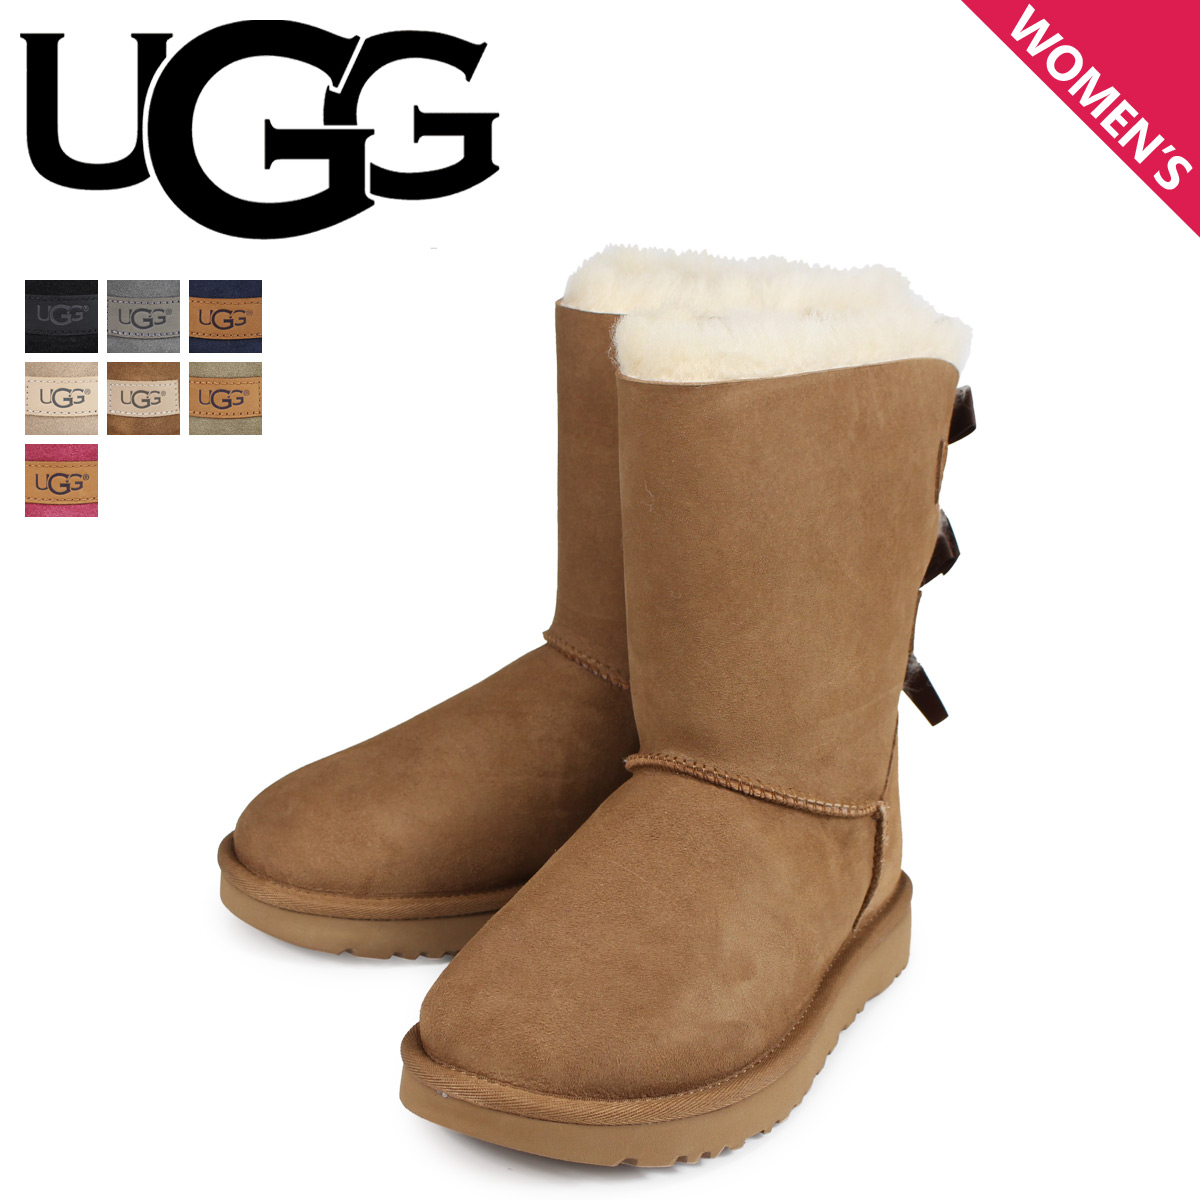 abd3da5e93ce アグ UGG mouton boots mini-Bailey bow tie 2 WOMENS MINI BAILEY BOW II 1016225  Lady s  load planned Shinnyu load in reservation product 10 30 containing